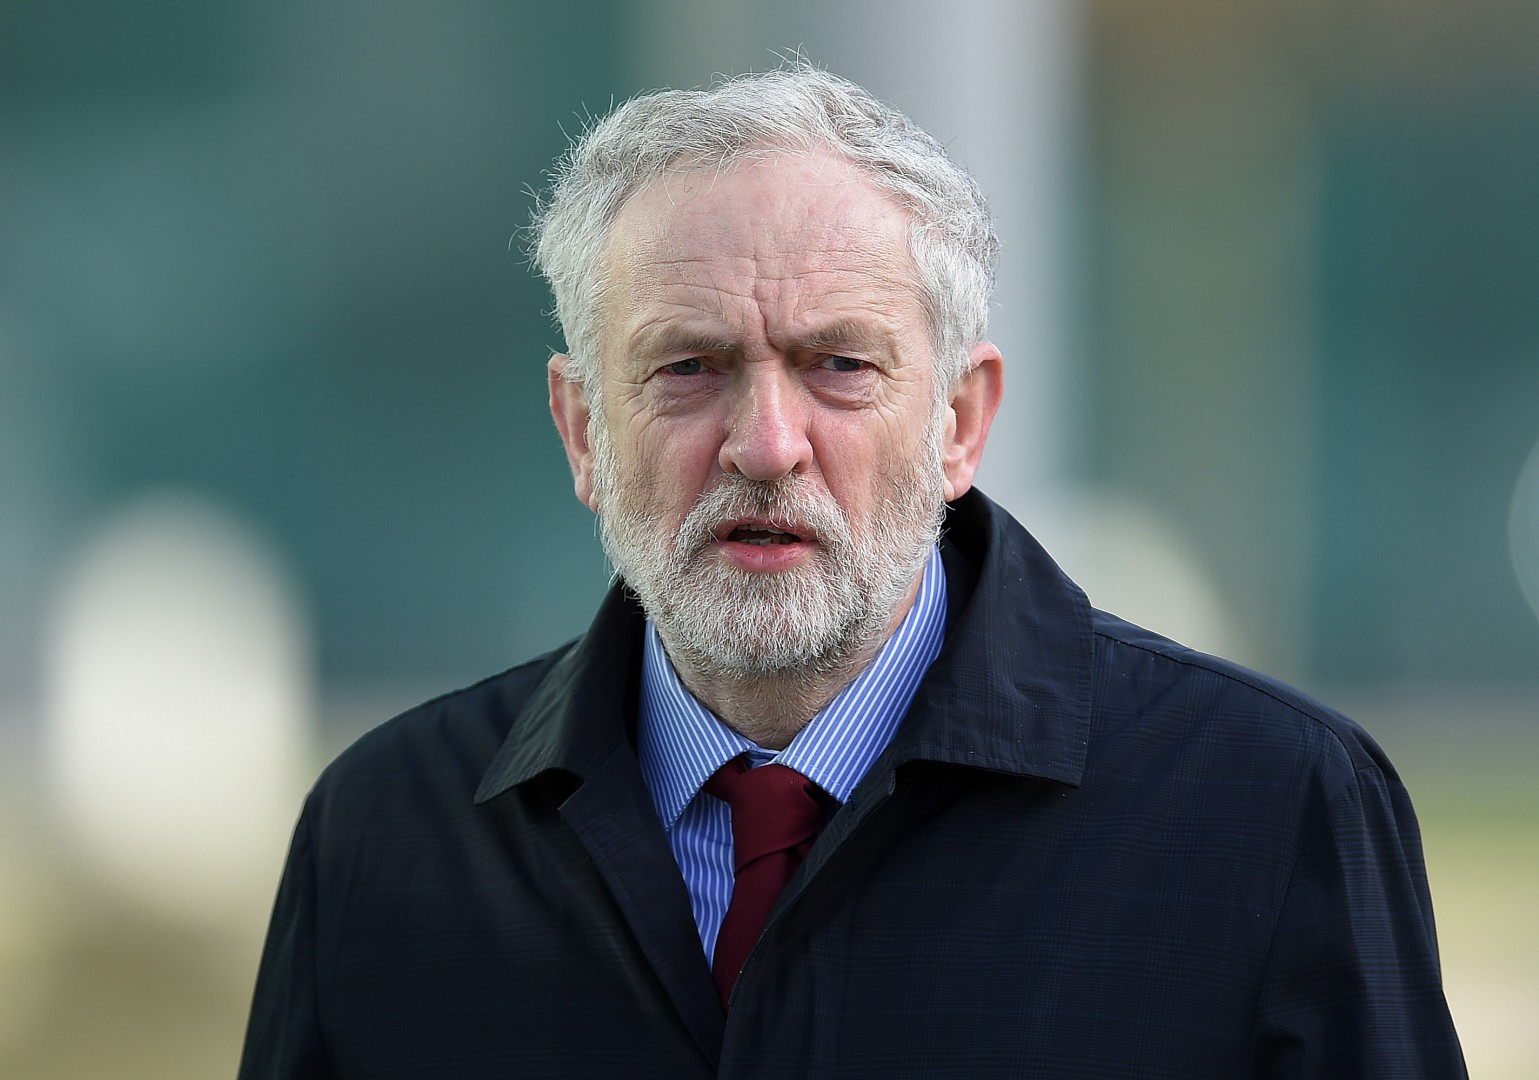 """Embargoed to 1800 Thursday February 18  File photo dated 18/02/16 of Labour leader Jeremy Corbyn, who has said that David Cameron's demands for European Union reform are a """"theatrical sideshow"""" and Labour will campaign to retain ties with Brussels whatever the outcome of the process. PRESS ASSOCIATION Photo. Issue date: Thursday February 18, 2016. The Labour leader, addressing a meeting of the Party of European Socialists in Brussels, said the Prime Minister's renegotiation agenda was a """"missed opportunity"""" to make the EU better for workers. See PA story POLITICS EU. Photo credit should read: Peter Powell/PA Wire"""